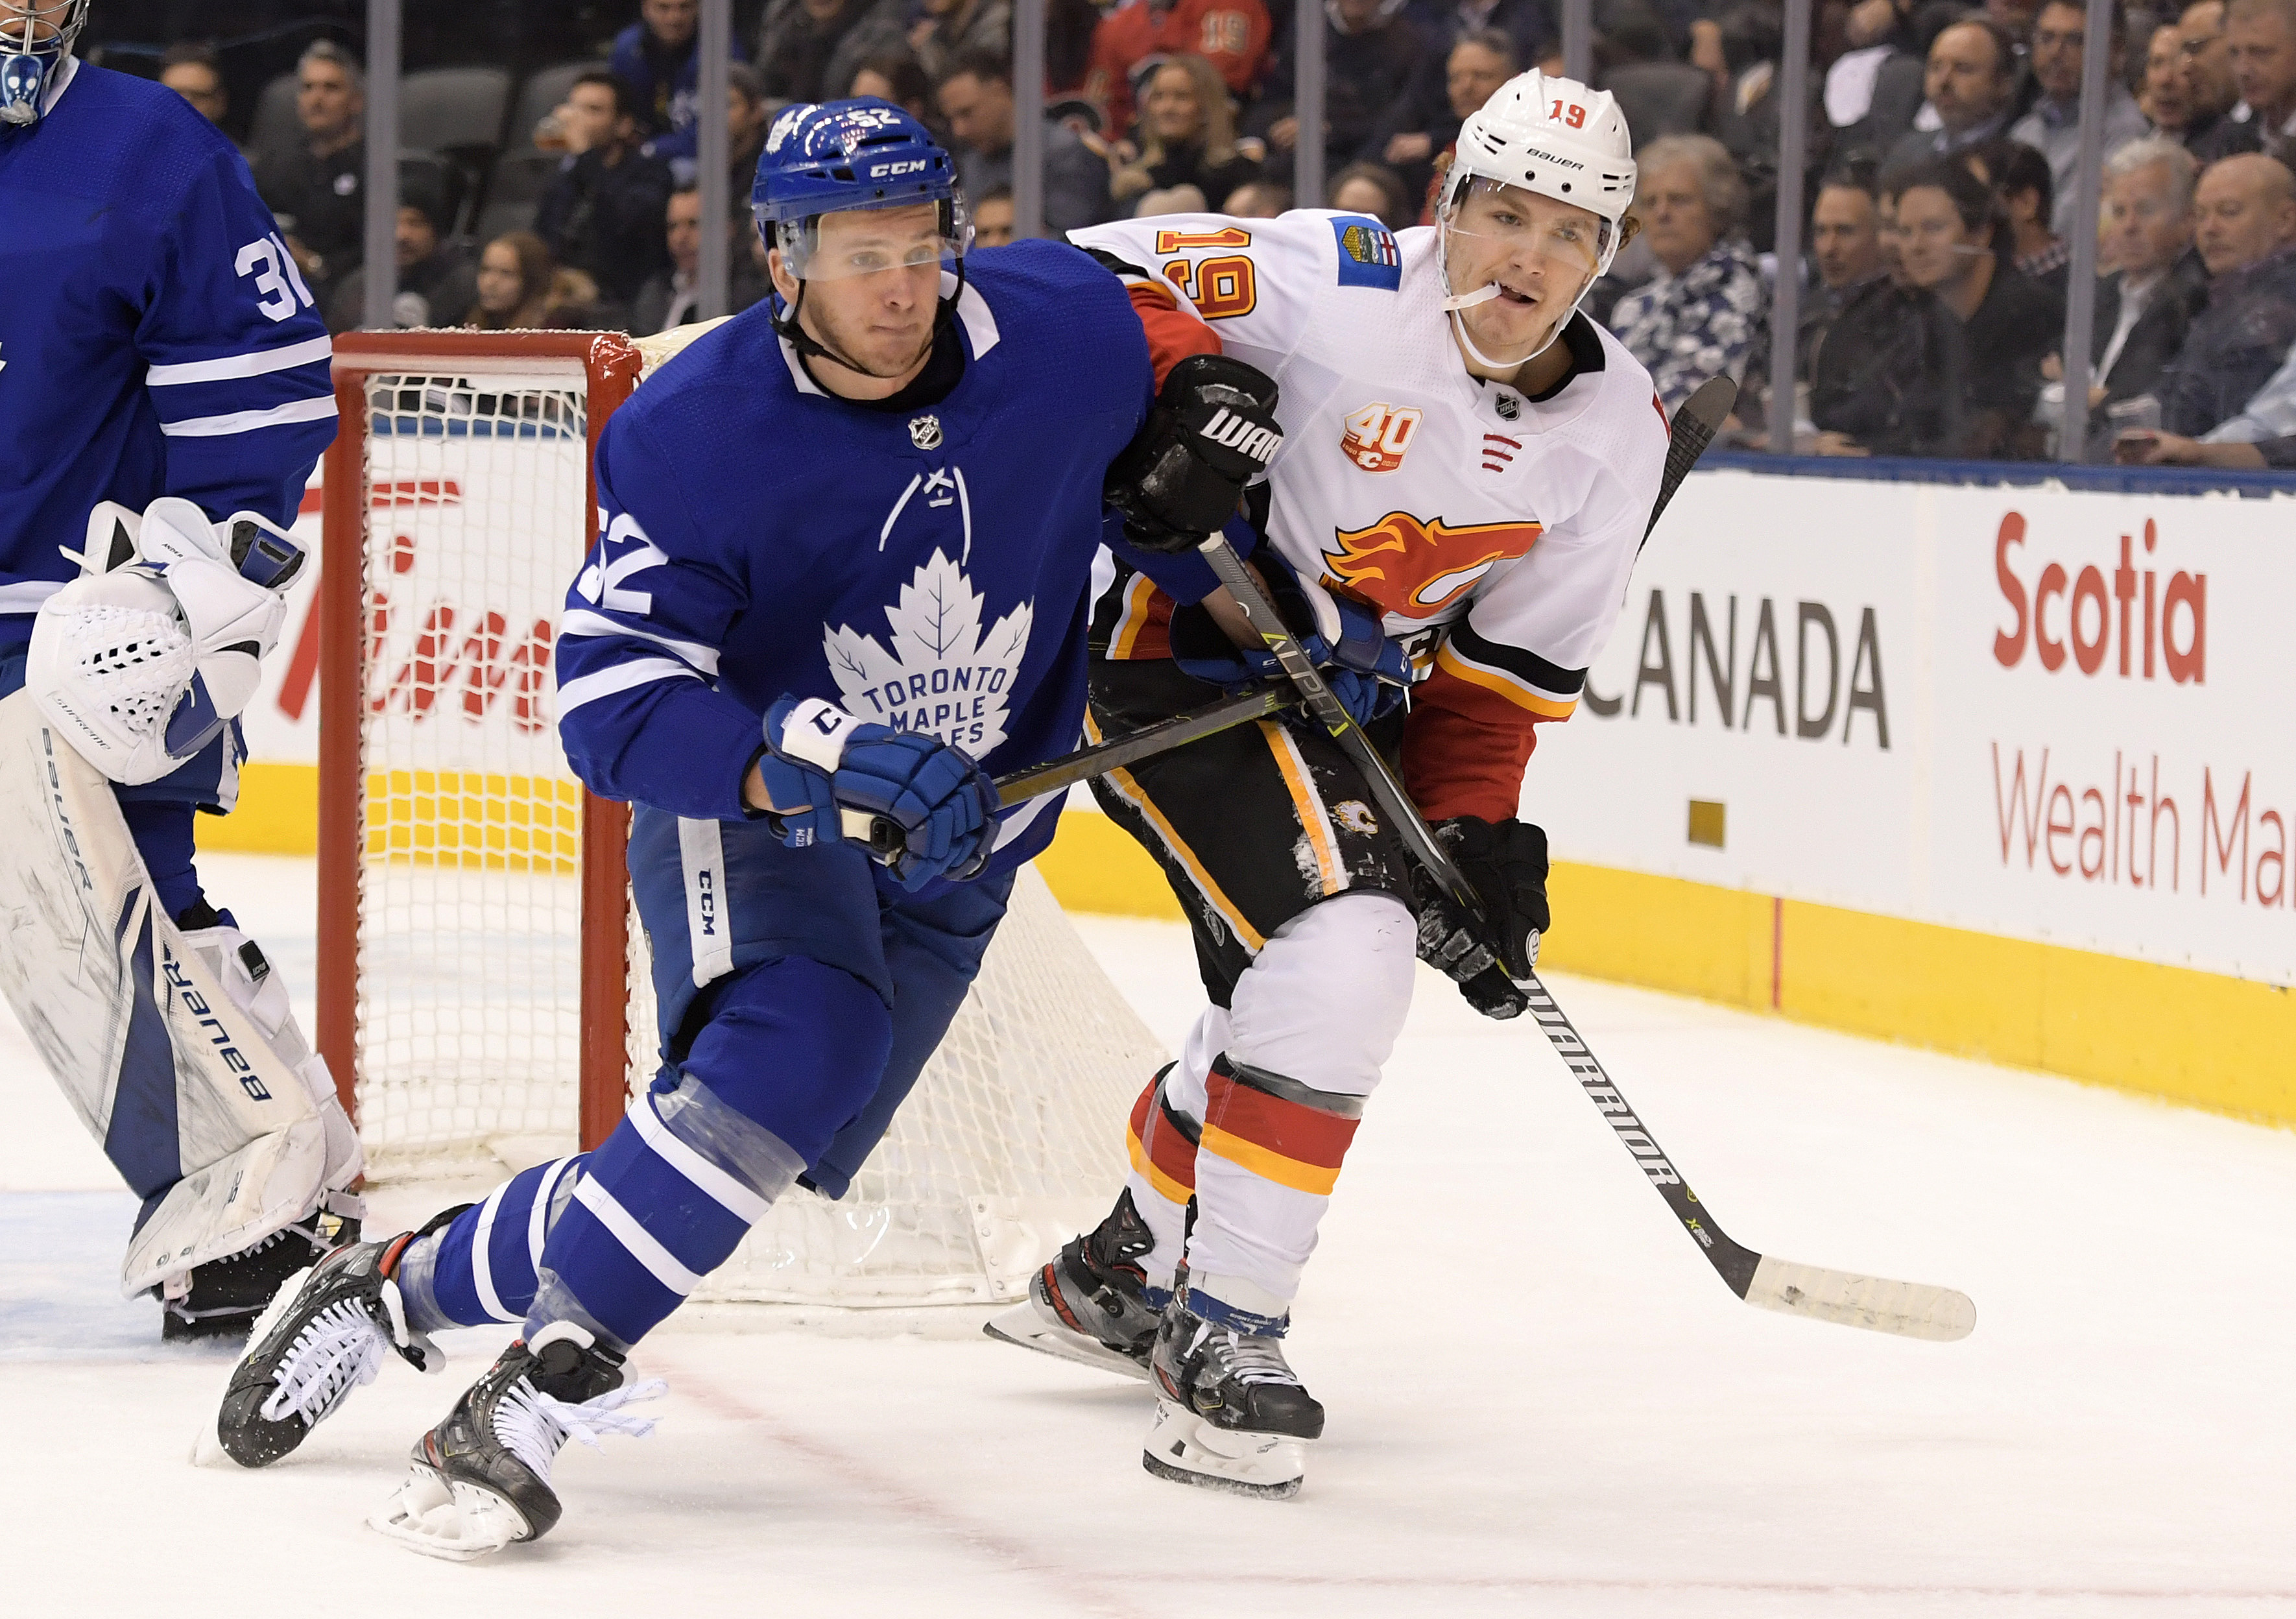 NHL: Calgary Flames at Toronto Maple Leafs